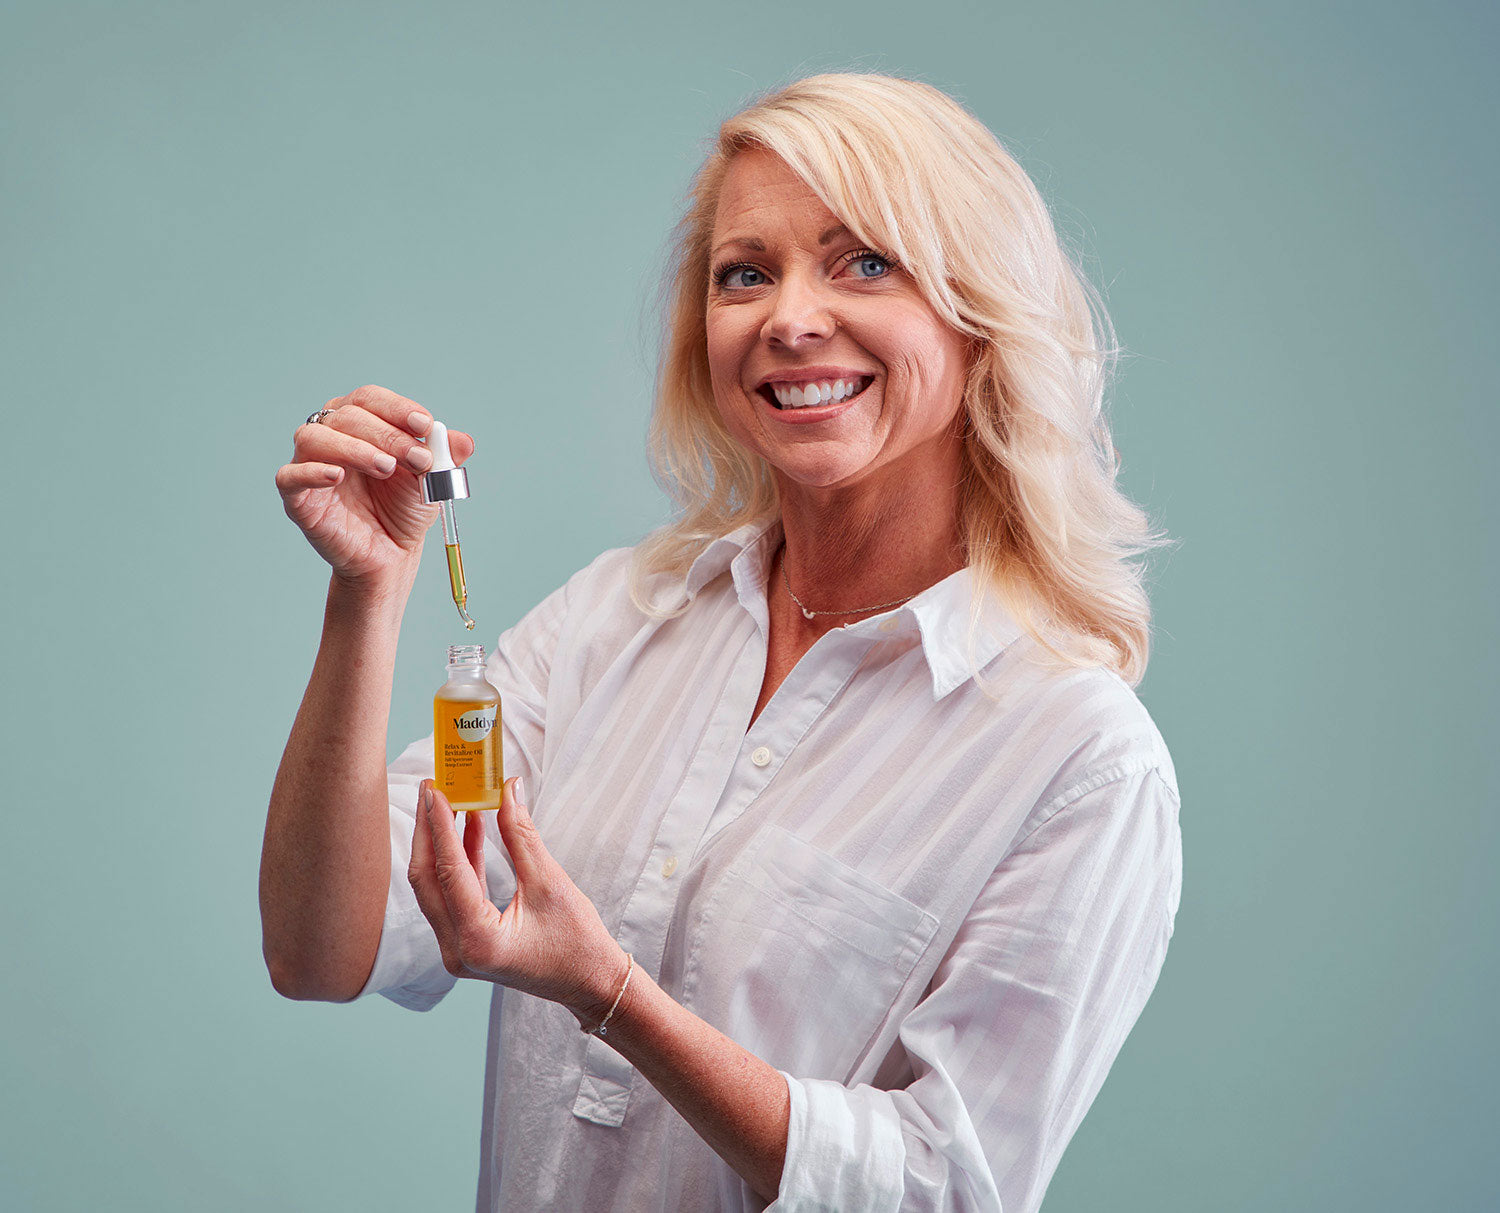 CBD Relax & Revitalize Oil